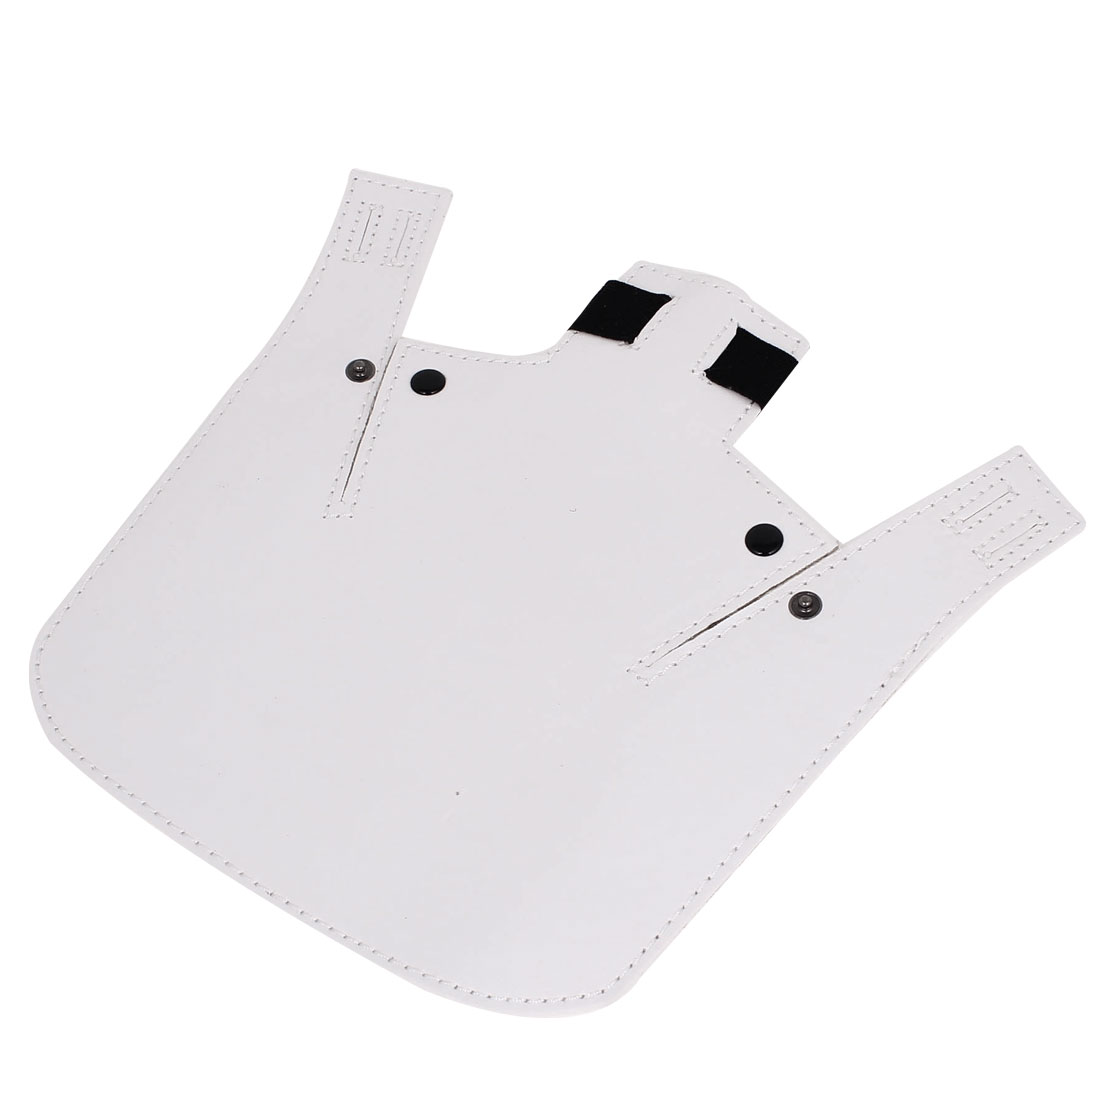 White Faux Leather Shovel Shaped Flash Reflector Board for SLR DSLR Camera